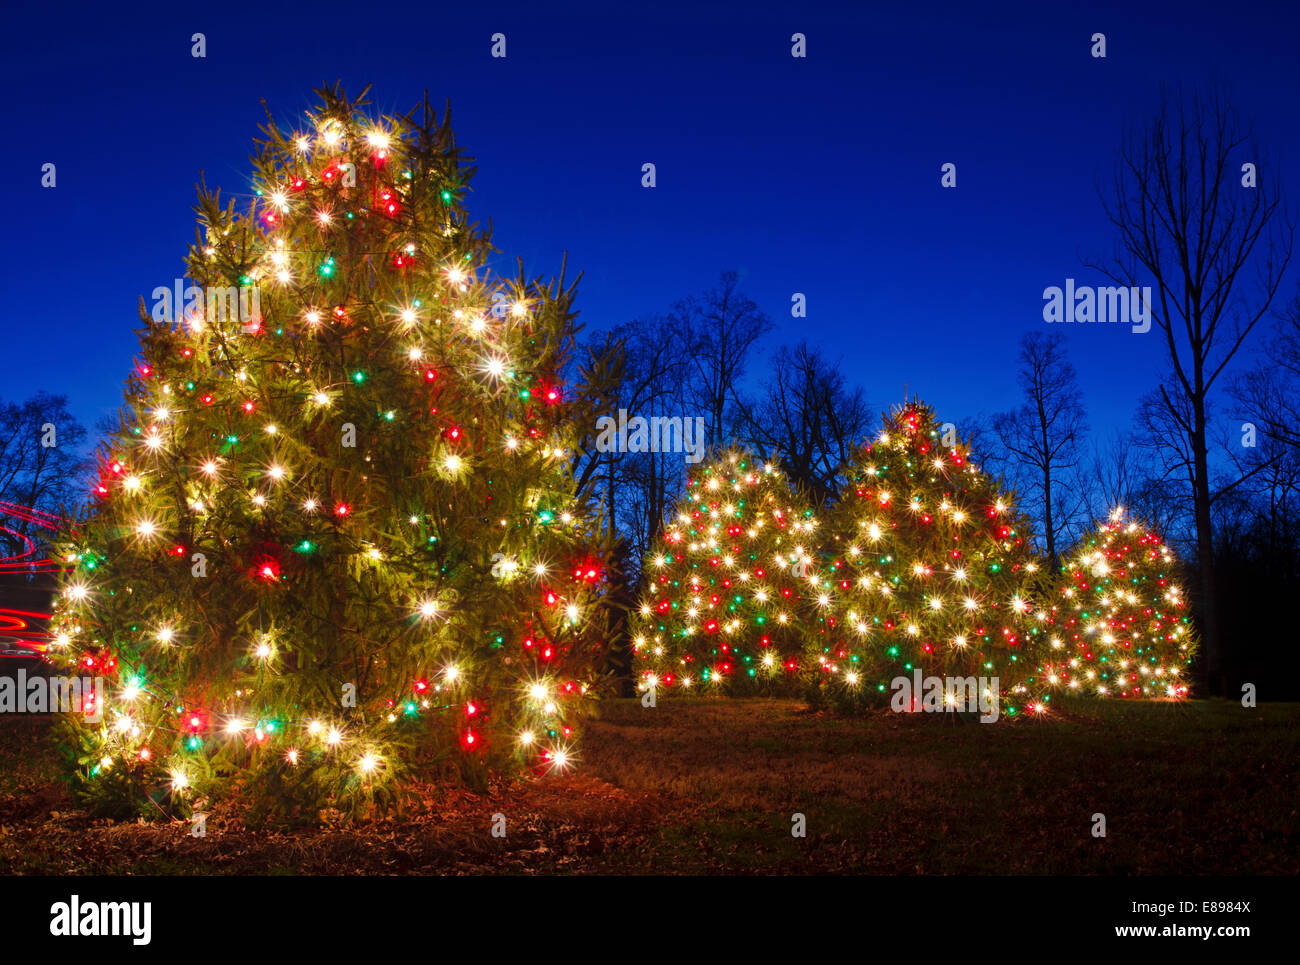 All Christmas Trees